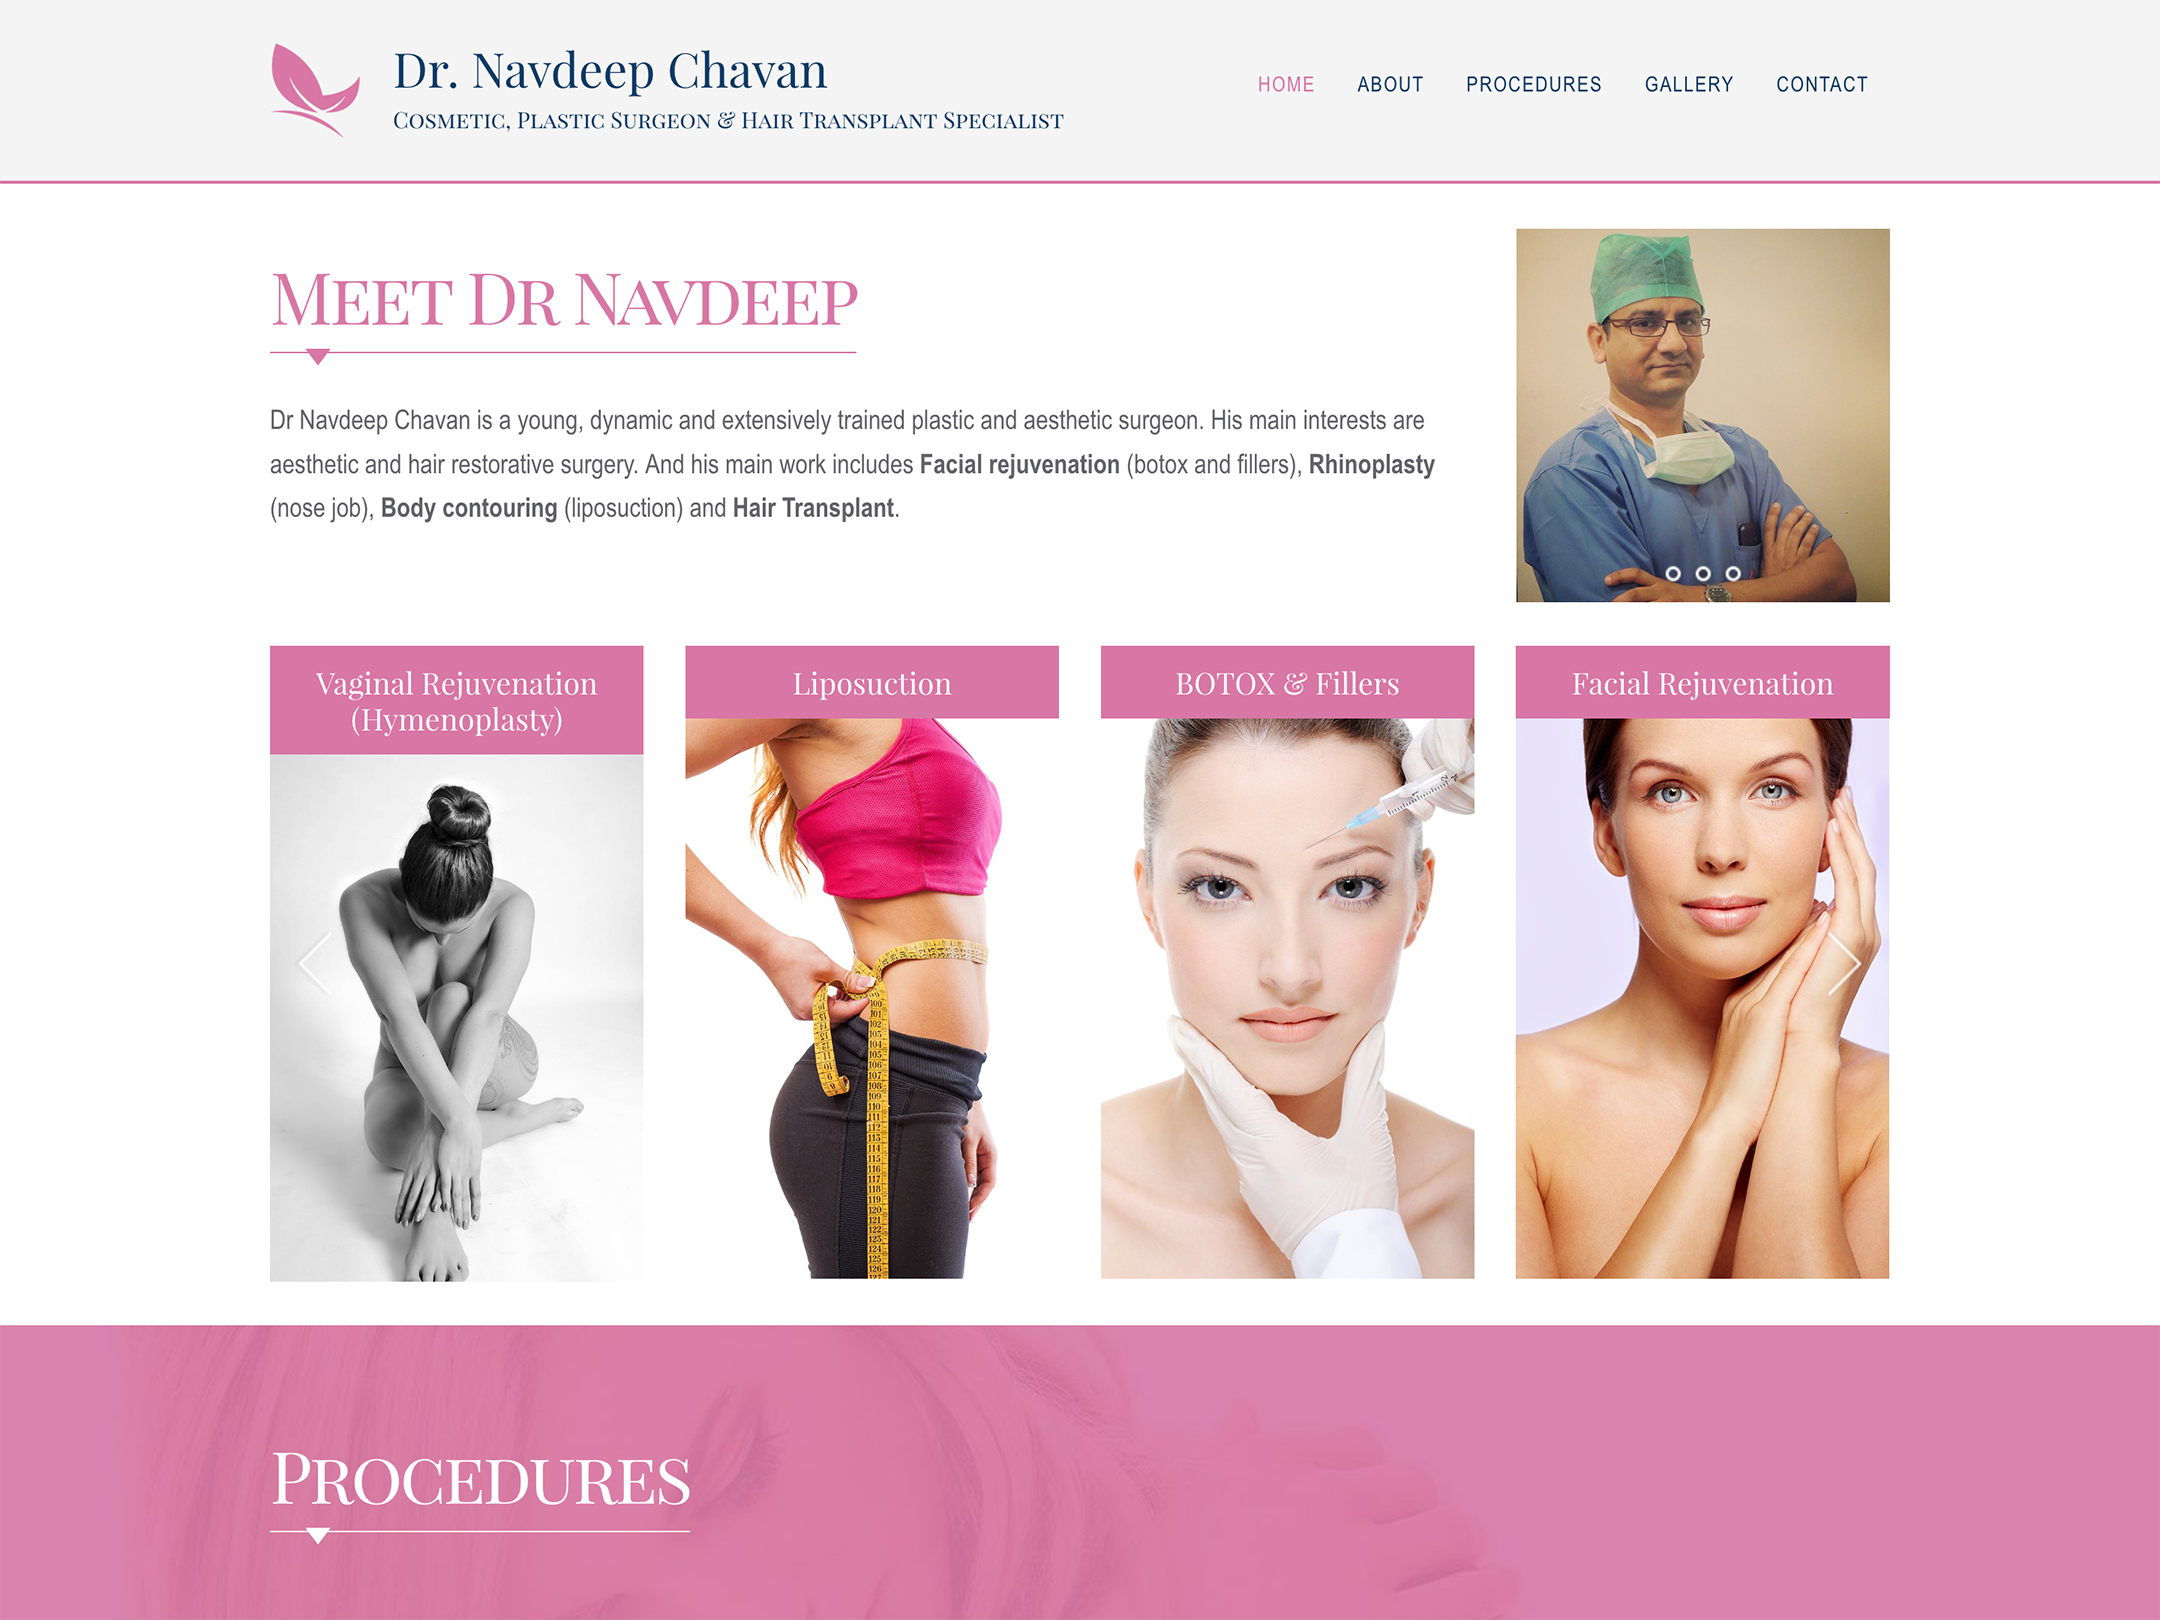 complete website design for dr navdeep chavan